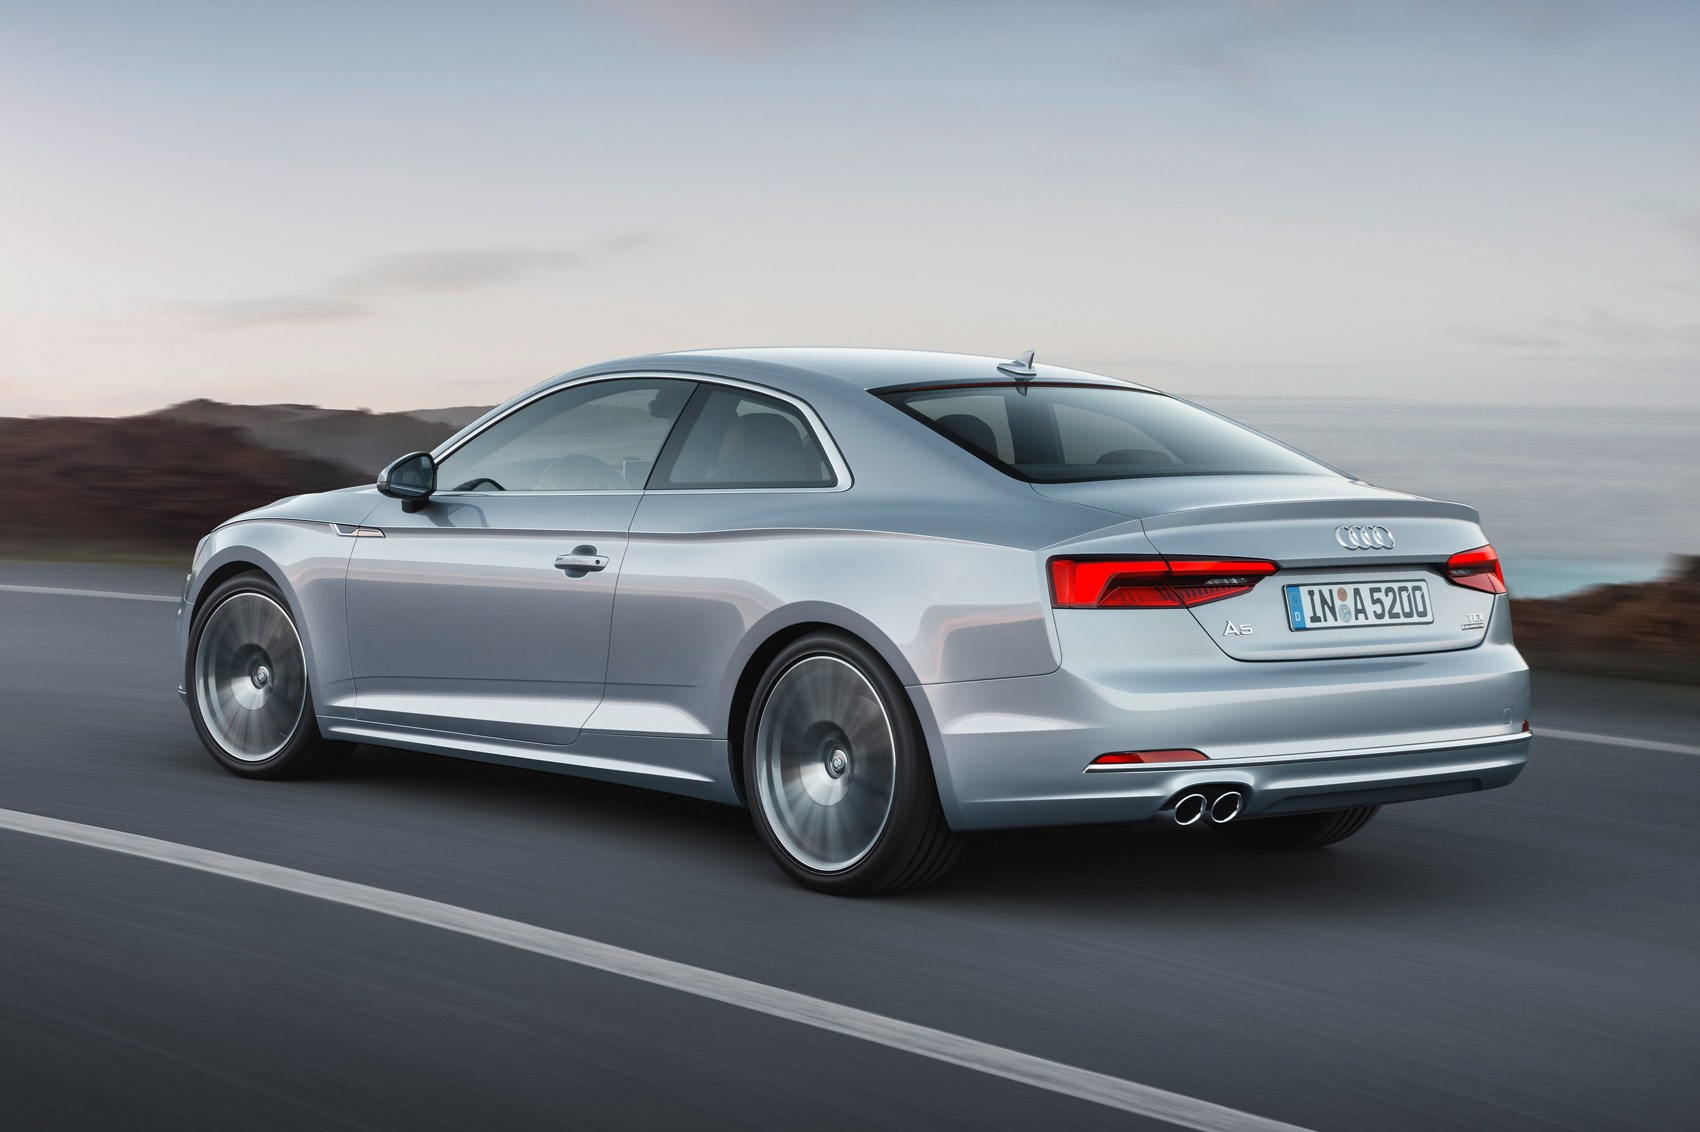 With new looks, new technologies and a new level of refinement, the Audi A5 range has been completely reimagined. Find out more.